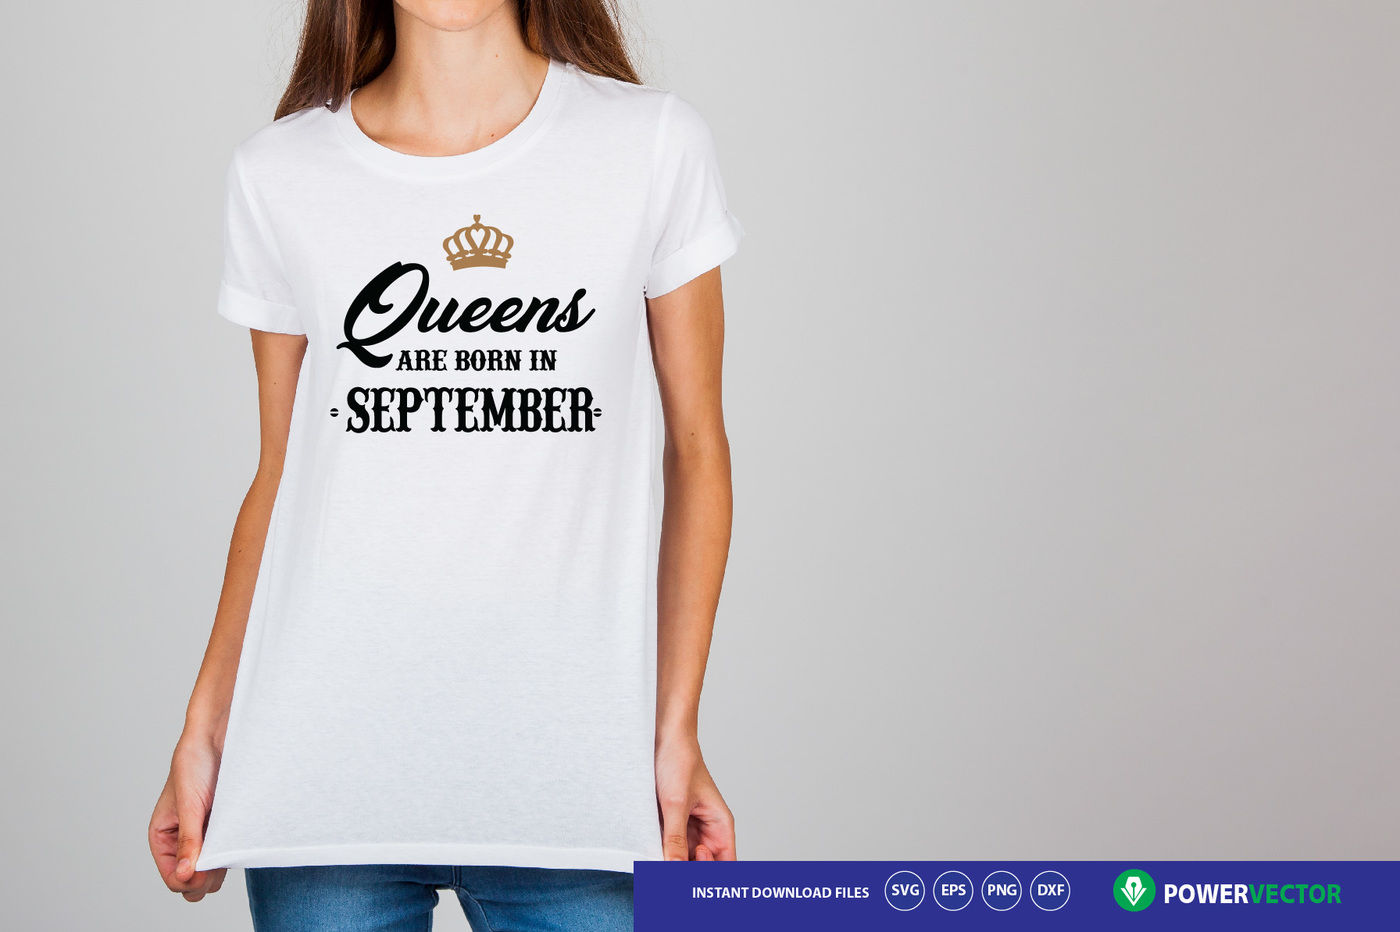 Queen Birthday Svg Dxf Eps Png Files Queens Are Born Svg By Powervector Thehungryjpeg Com